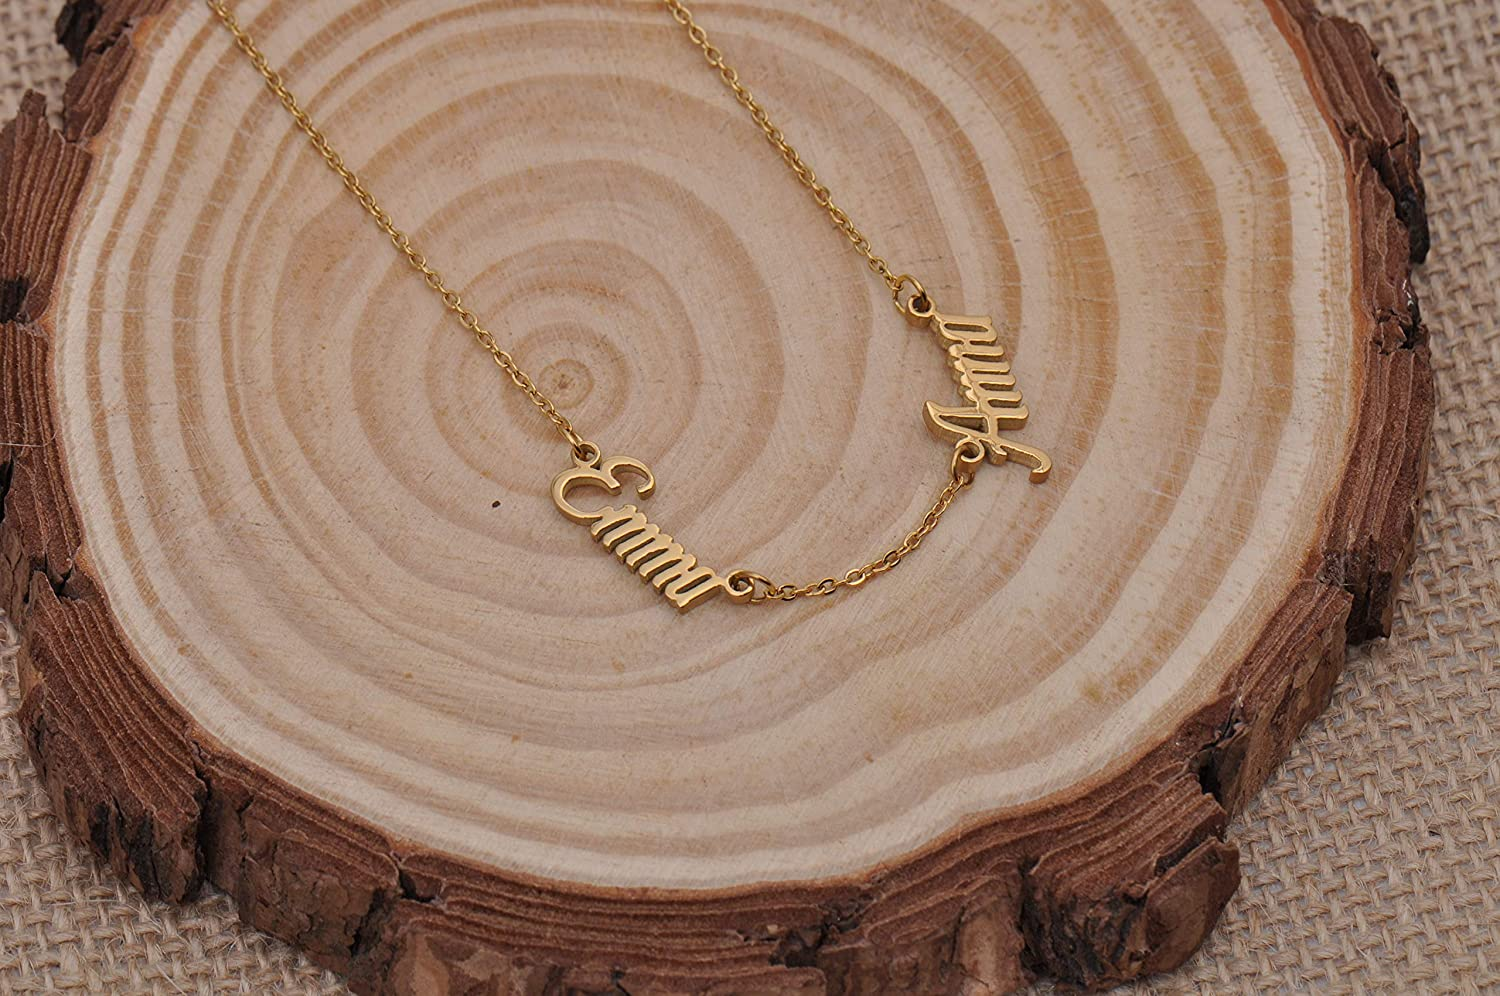 Personalized Name Necklace Custom Any Name Necklaces Graduation Gifts